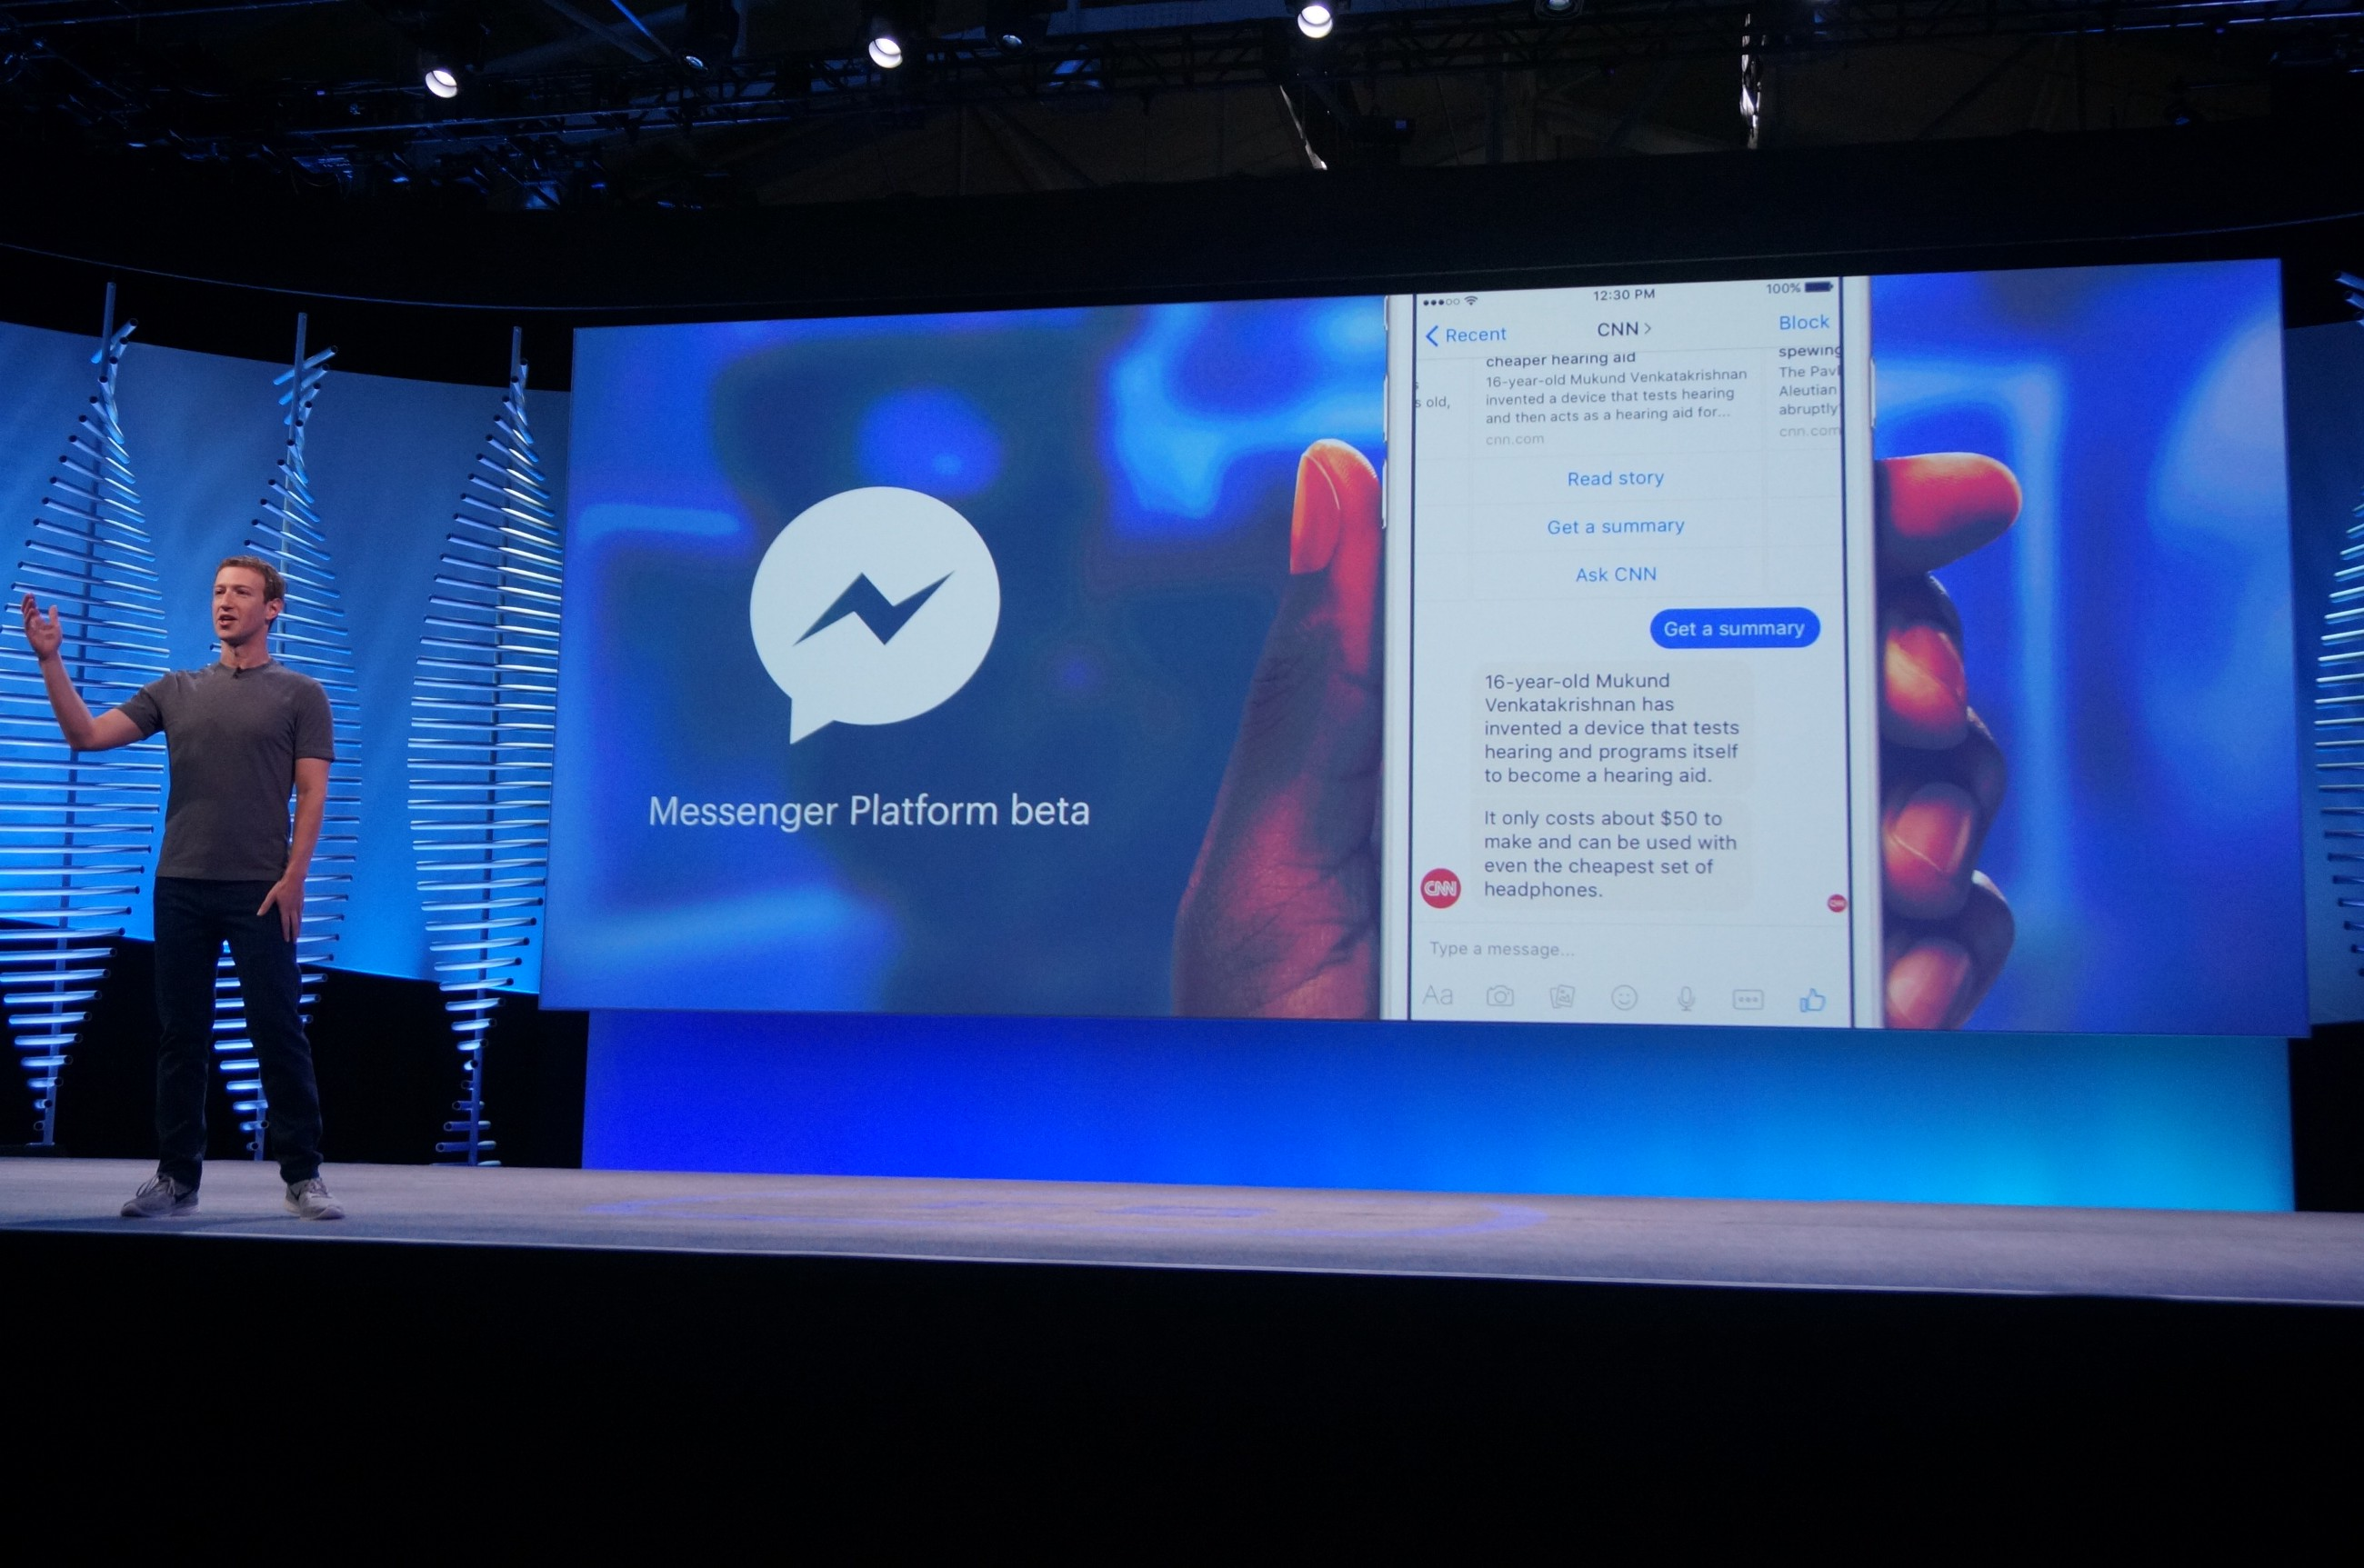 15 Things Missing From Facebook Messengers Chatbot Platform Documentation